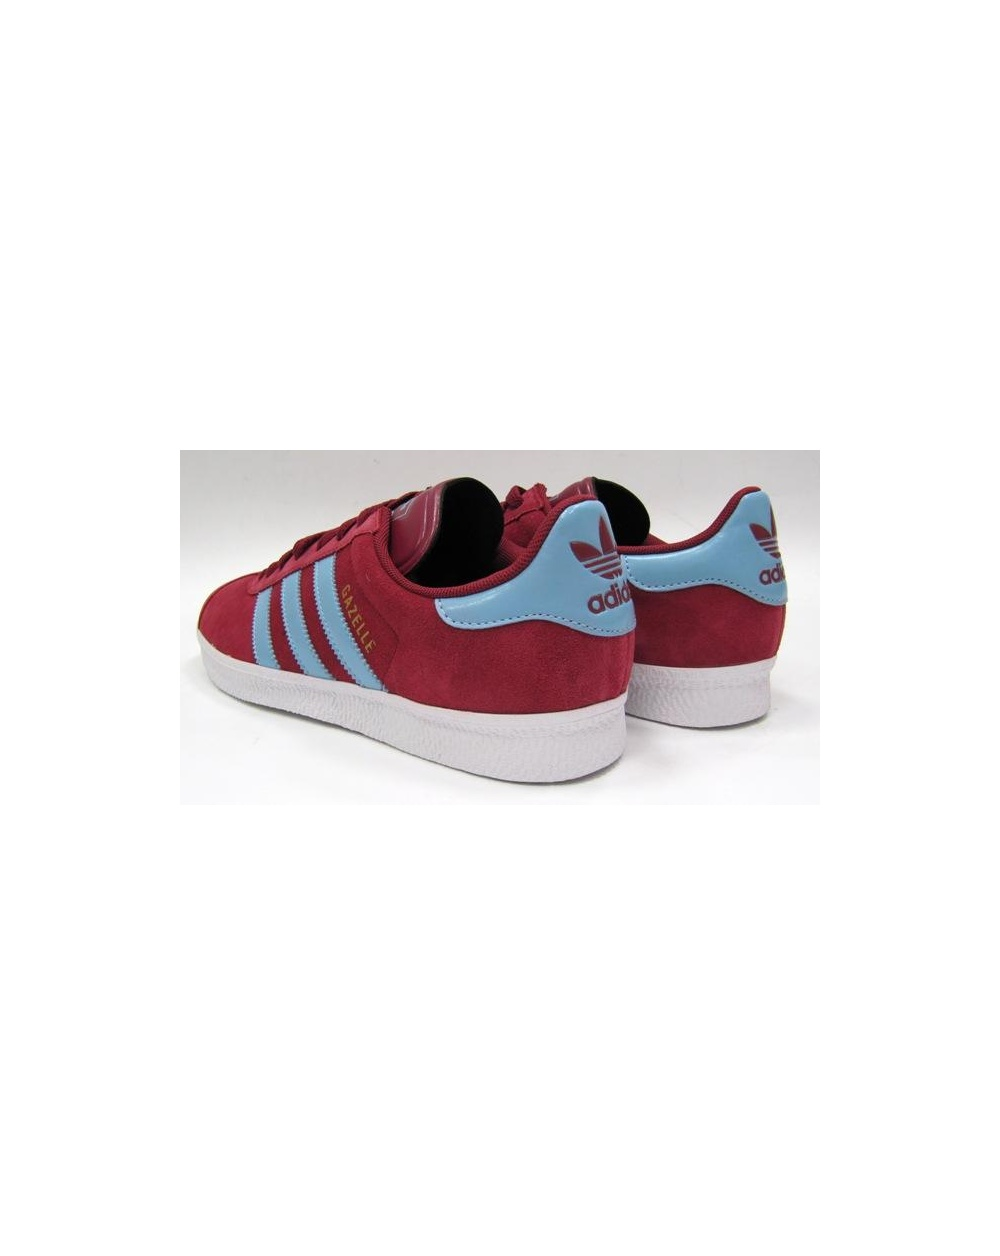 Adidas Gazelle Claret And Sky Blue